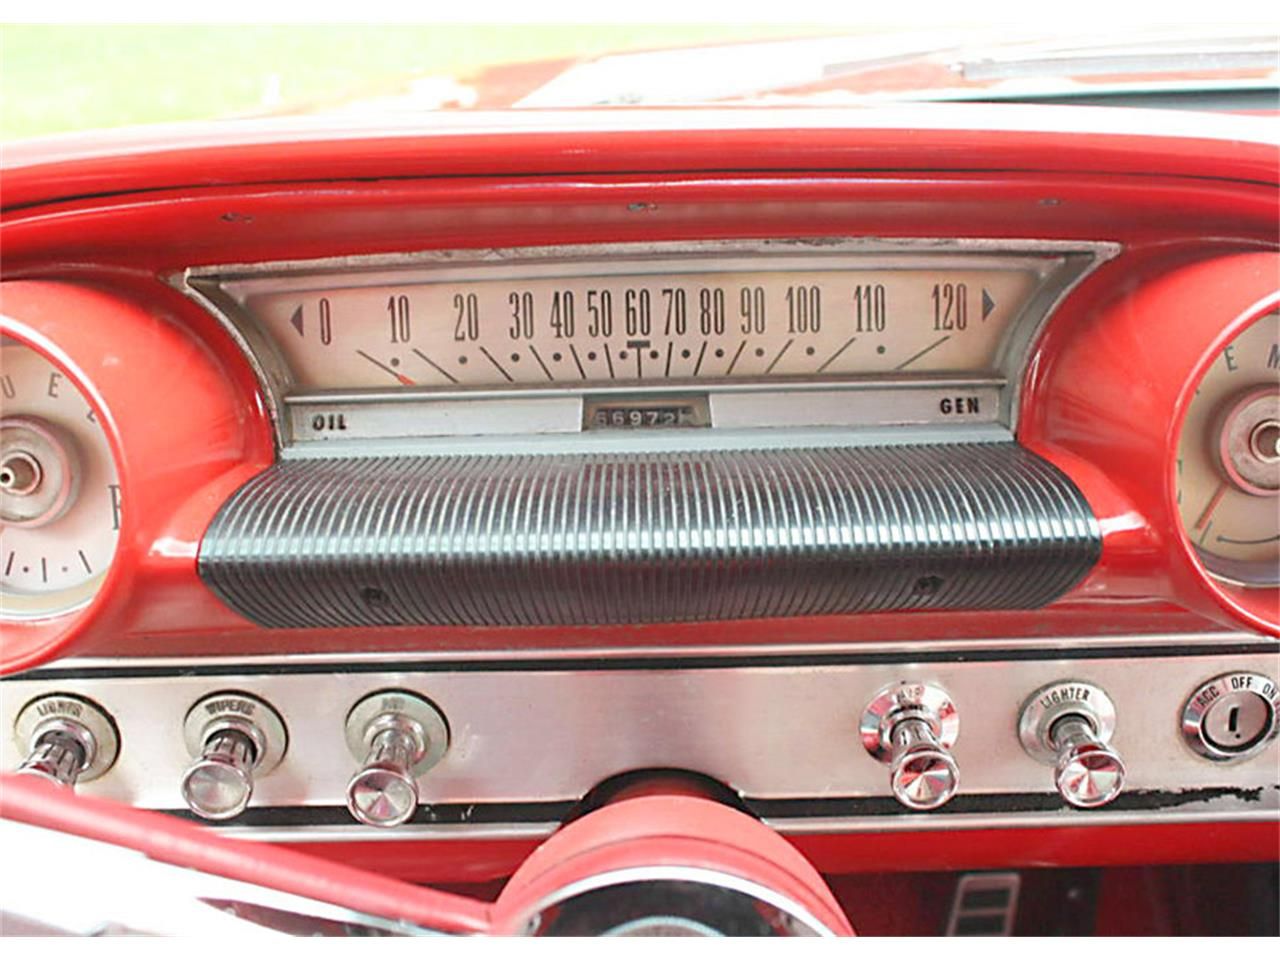 Large Picture of '64 Ford Galaxie 500 located in Lakeland Florida Offered by MJC Classic Cars - NOH3